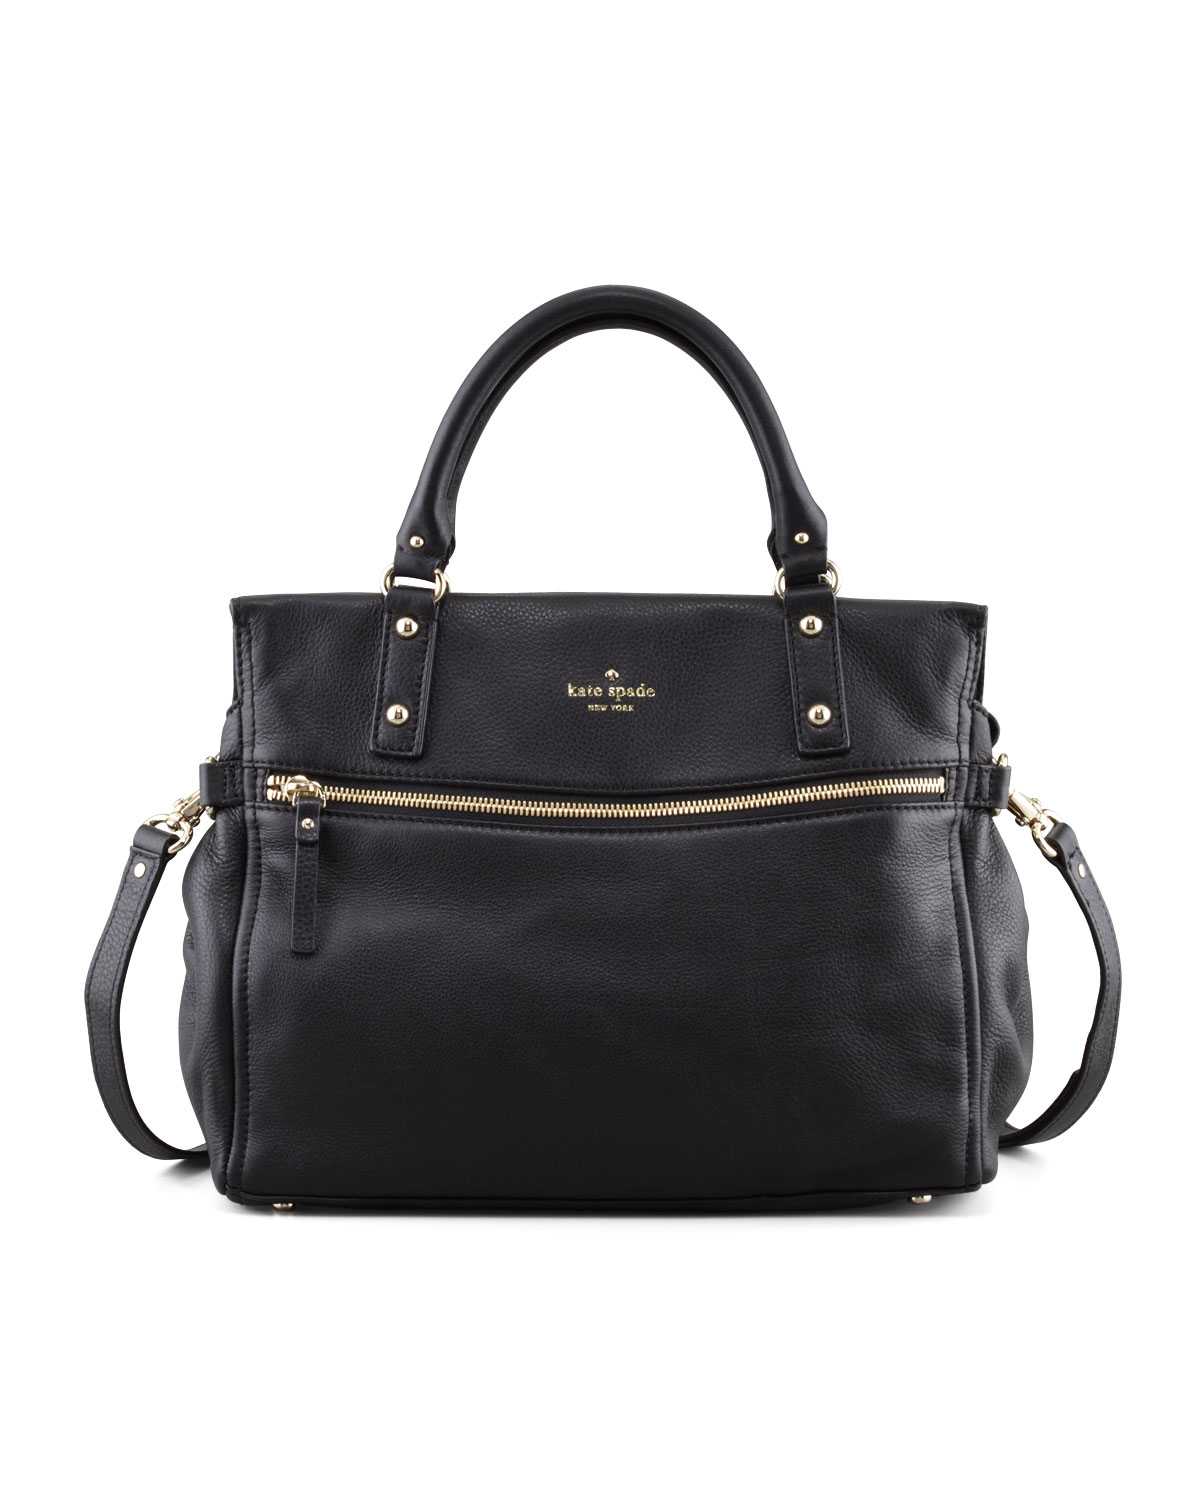 cobble hill little murphy satchel bag, black   kate spade new york